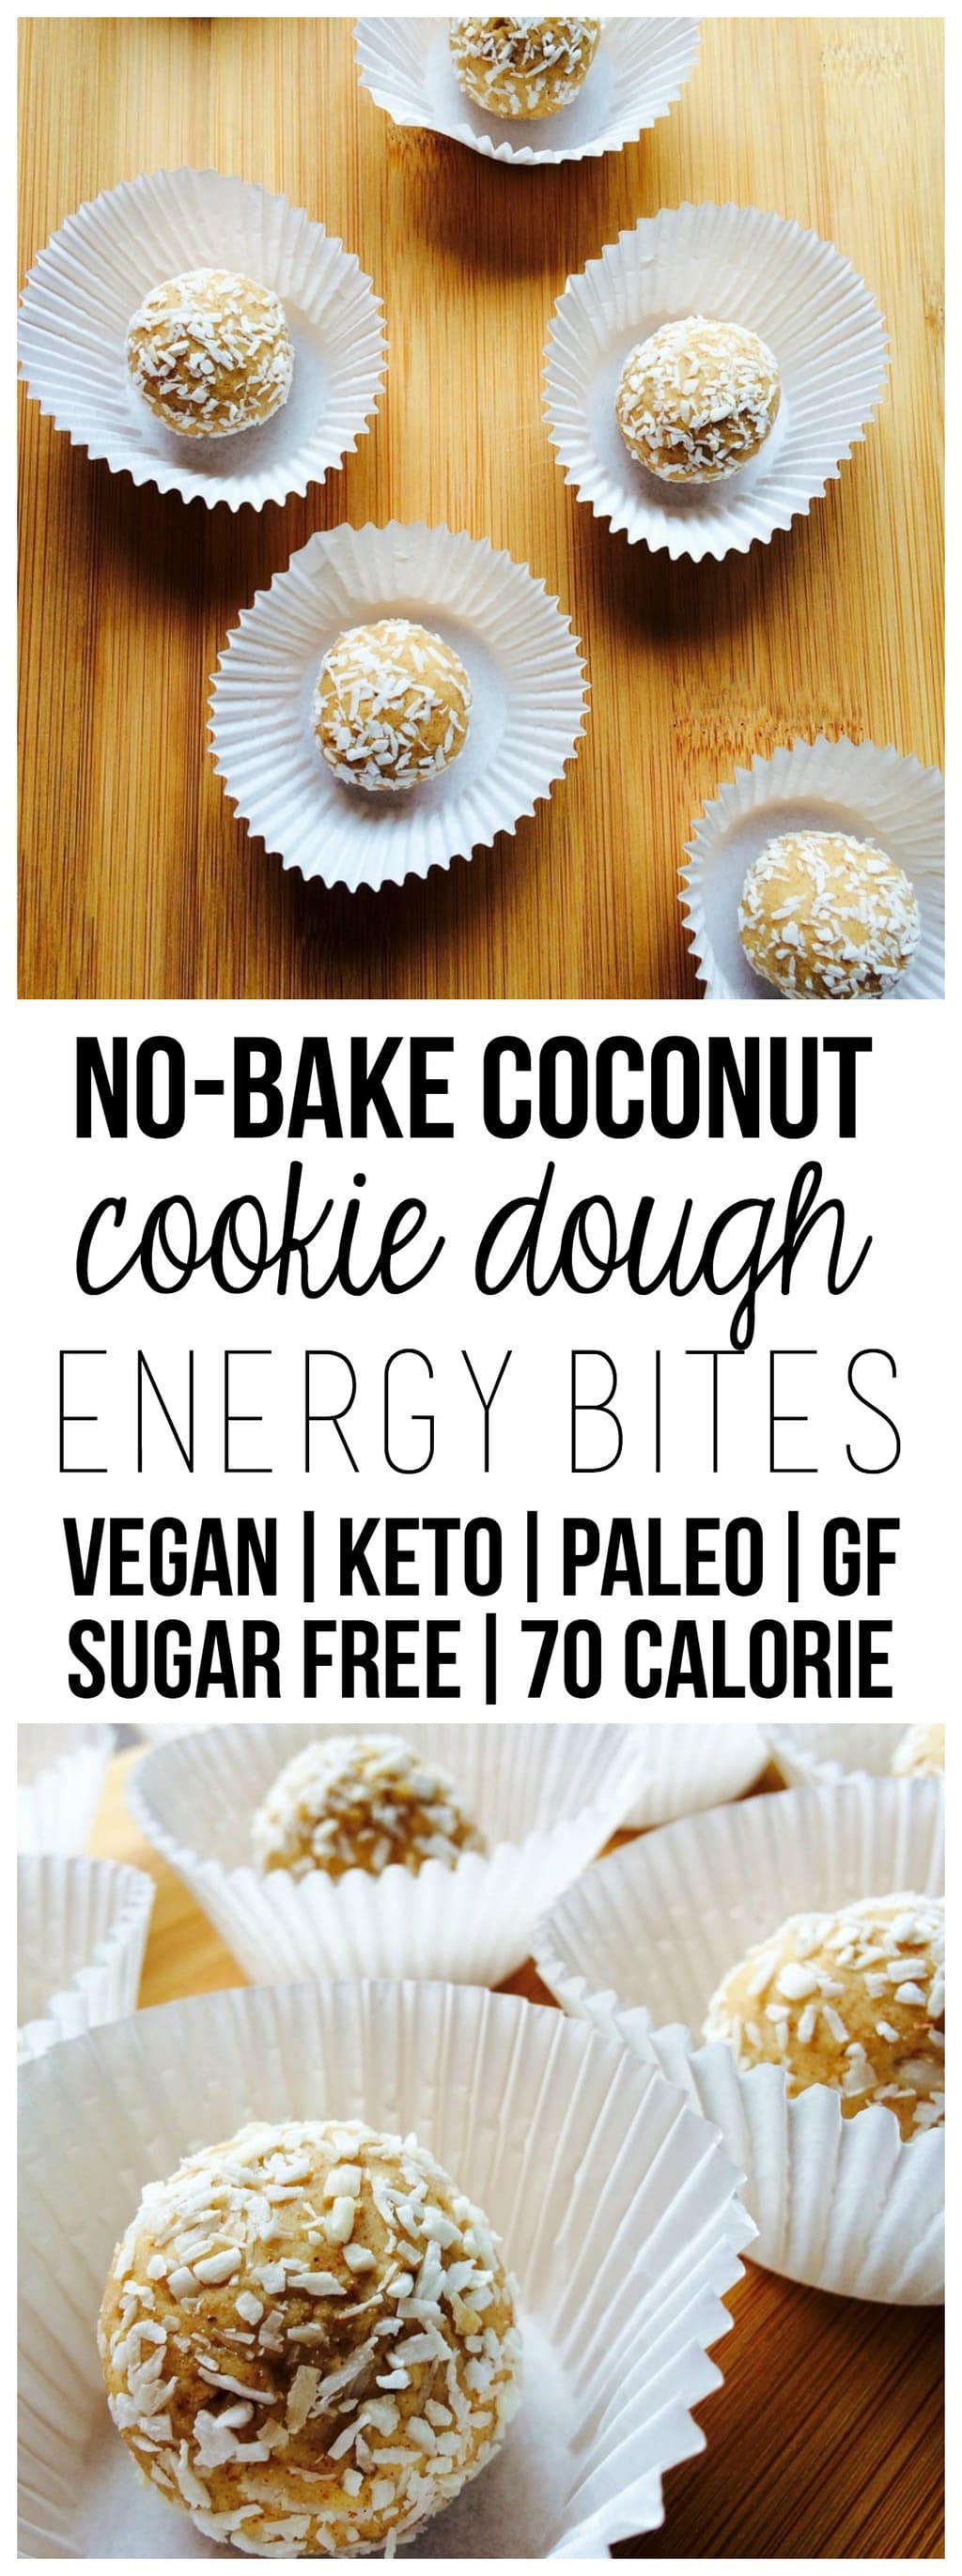 You will LOVE these No-Bake Coconut Cookie Dough Energy Bites!! They are super healthy and beyond easy to make. They're vegan, paleo, keto, gluten-free, oil-free, dairy-free, sugar-free, low-carb & low-calorie - only 73 calories each!